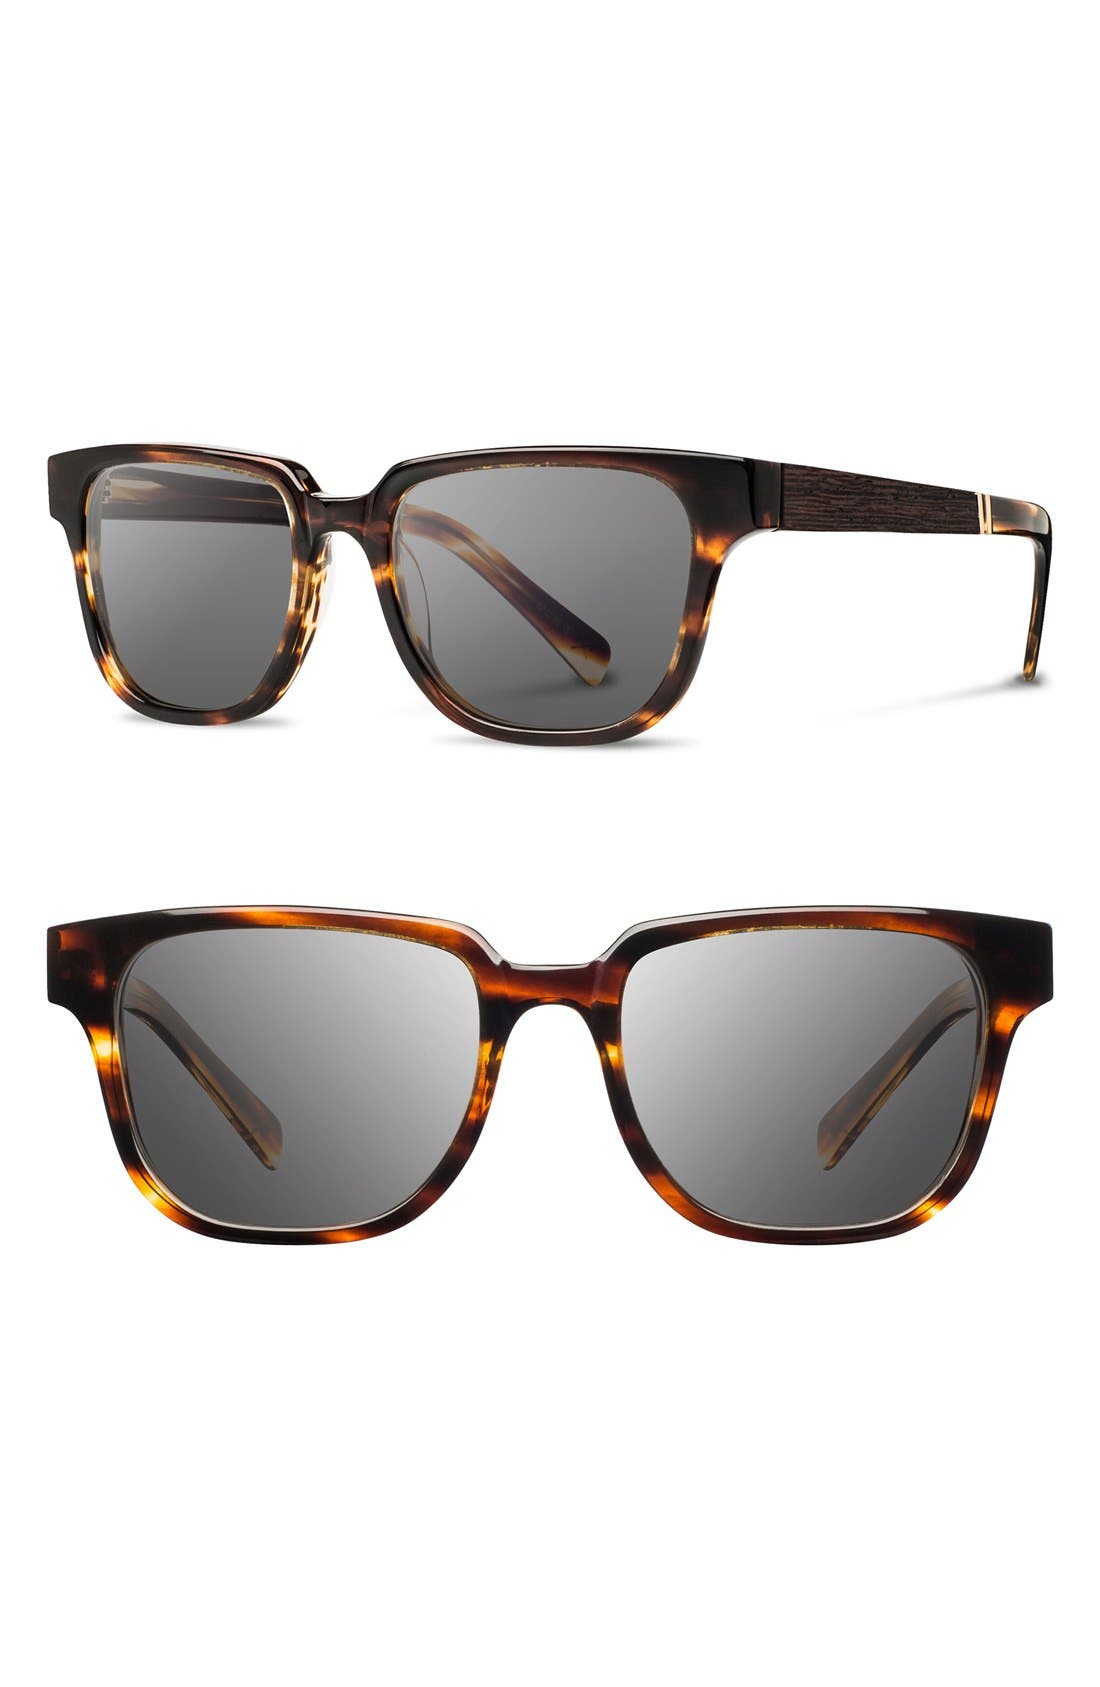 SHWOOD Prescott 52mm Polarized Acetate & Wood Sunglasses